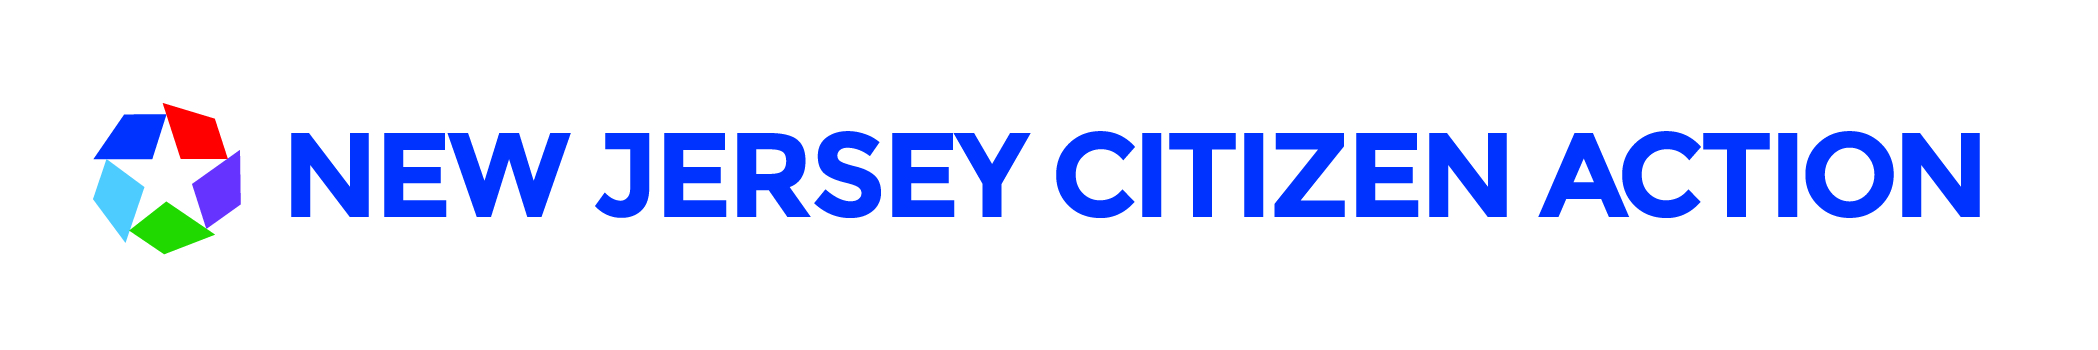 New Jersey Citizen Action logo